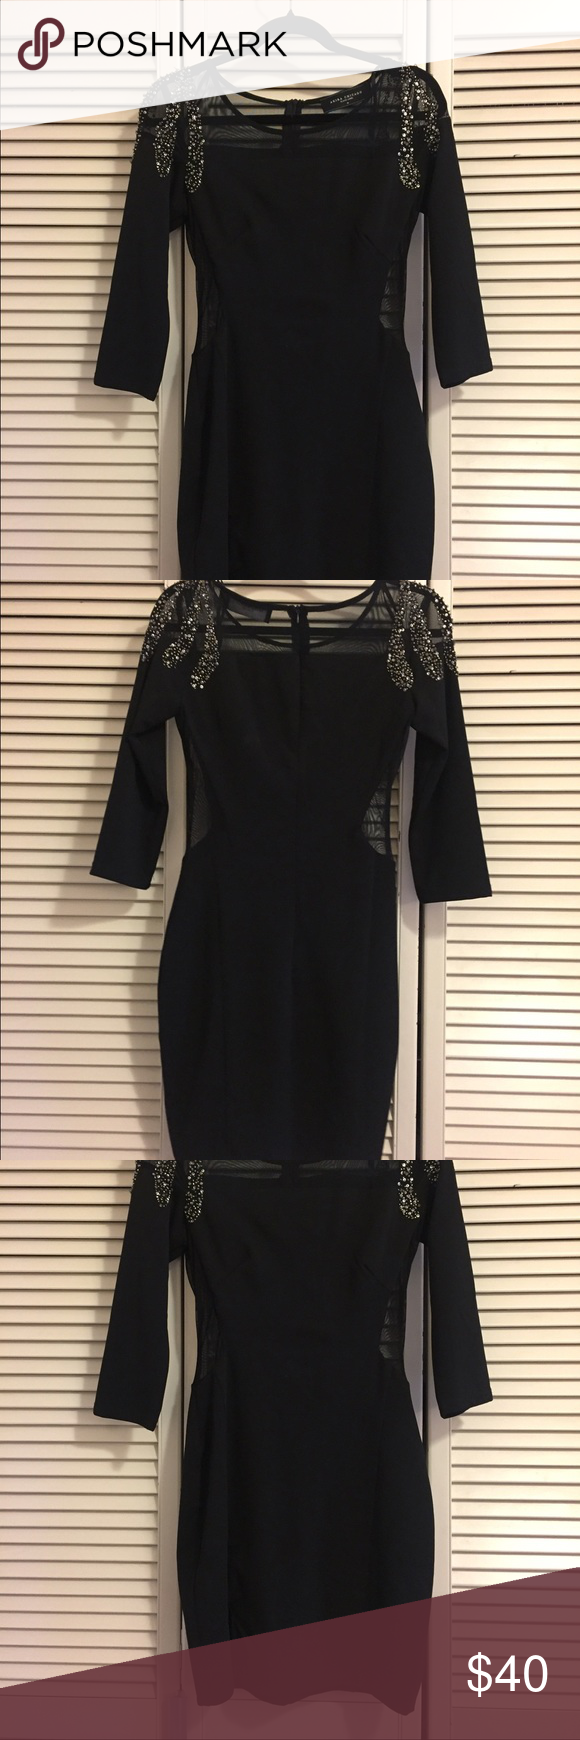 Black Sequined Cutout Dress Perfect for the holidays! This dress has sexy cutouts on the side and shoulders but is not too revealing. Also has a slit up to the mid thigh. I've worn to a couple holiday parties and always get compliments! AKIRA Dresses